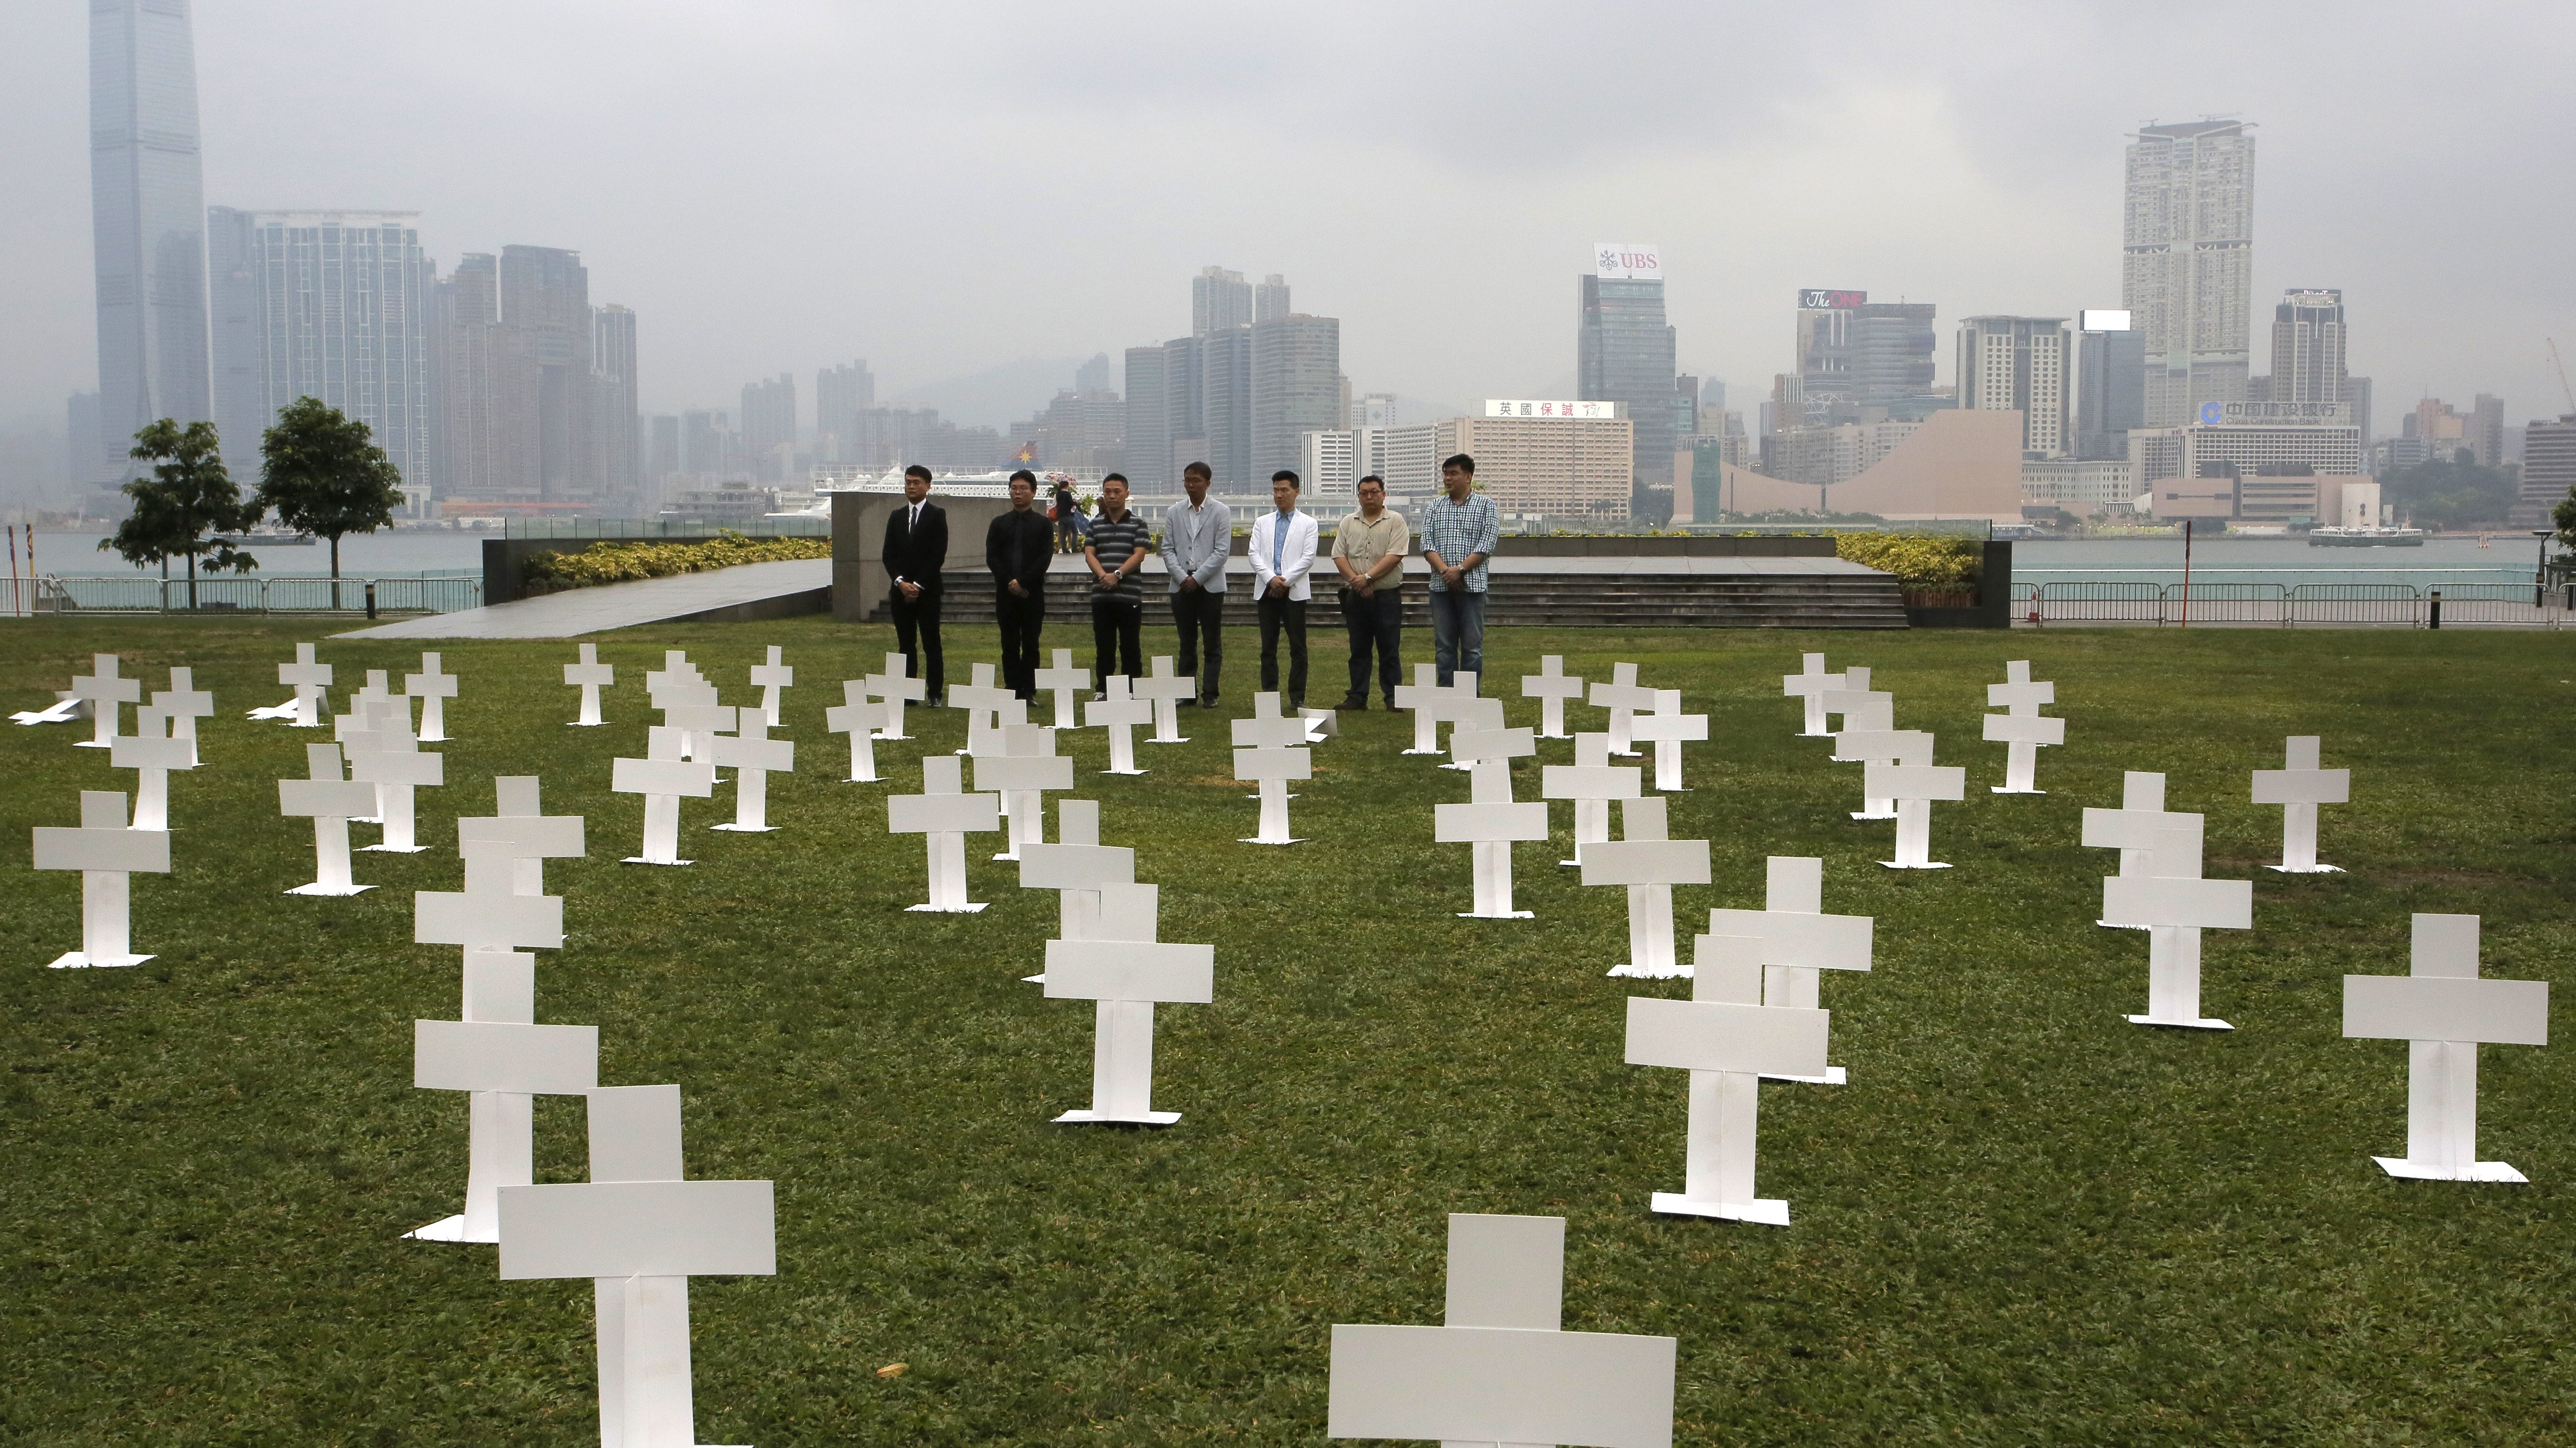 Protesters set up paper grave markers during a protest to against the visit of Zhang Dejiang, chairman of China's National People's Congress, to Hong Kong, Tuesday, May 17, 2016. Hong Kong authorities rolled out a massive security operation on Tuesday as they brace for protests during a top Beijing official's visit to the semiautonomous city, which has been the scene of rising discontent with Chinese rule.Hong Kong, Tuesday, May 17, 2016. (AP Photo/Vincent Yu)